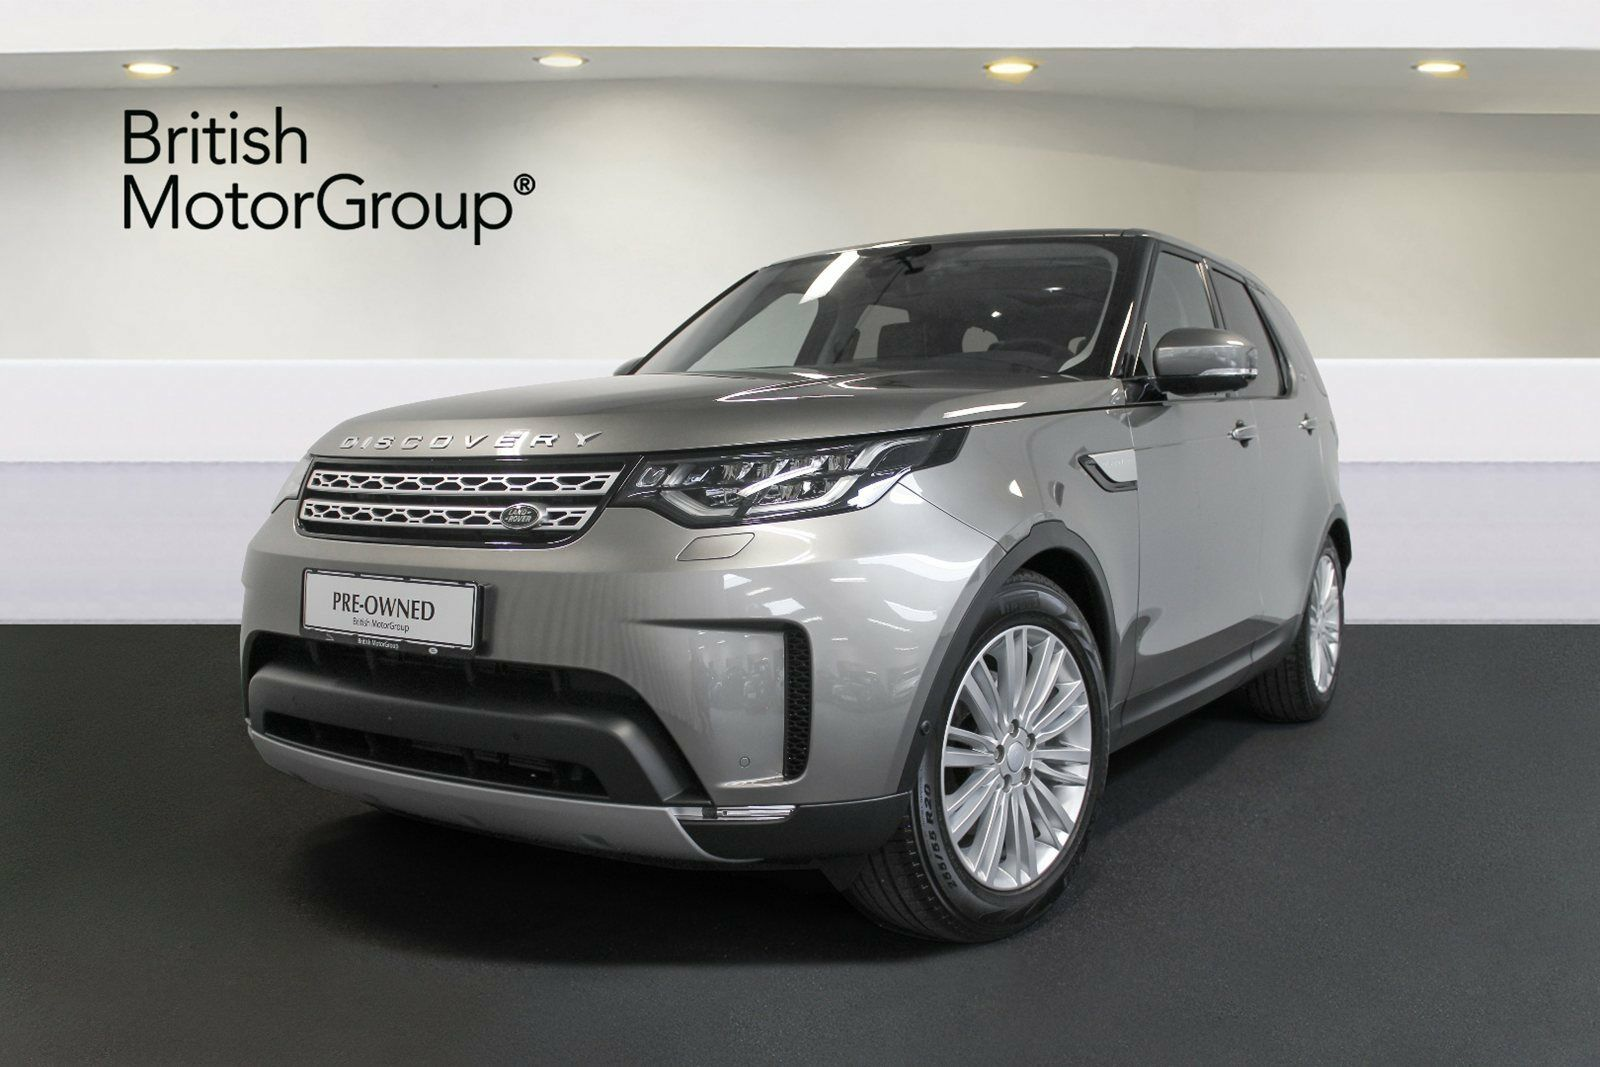 Land Rover Discovery 5 3,0 TD6 HSE Luxury aut. 7prs 5d - 0 kr.